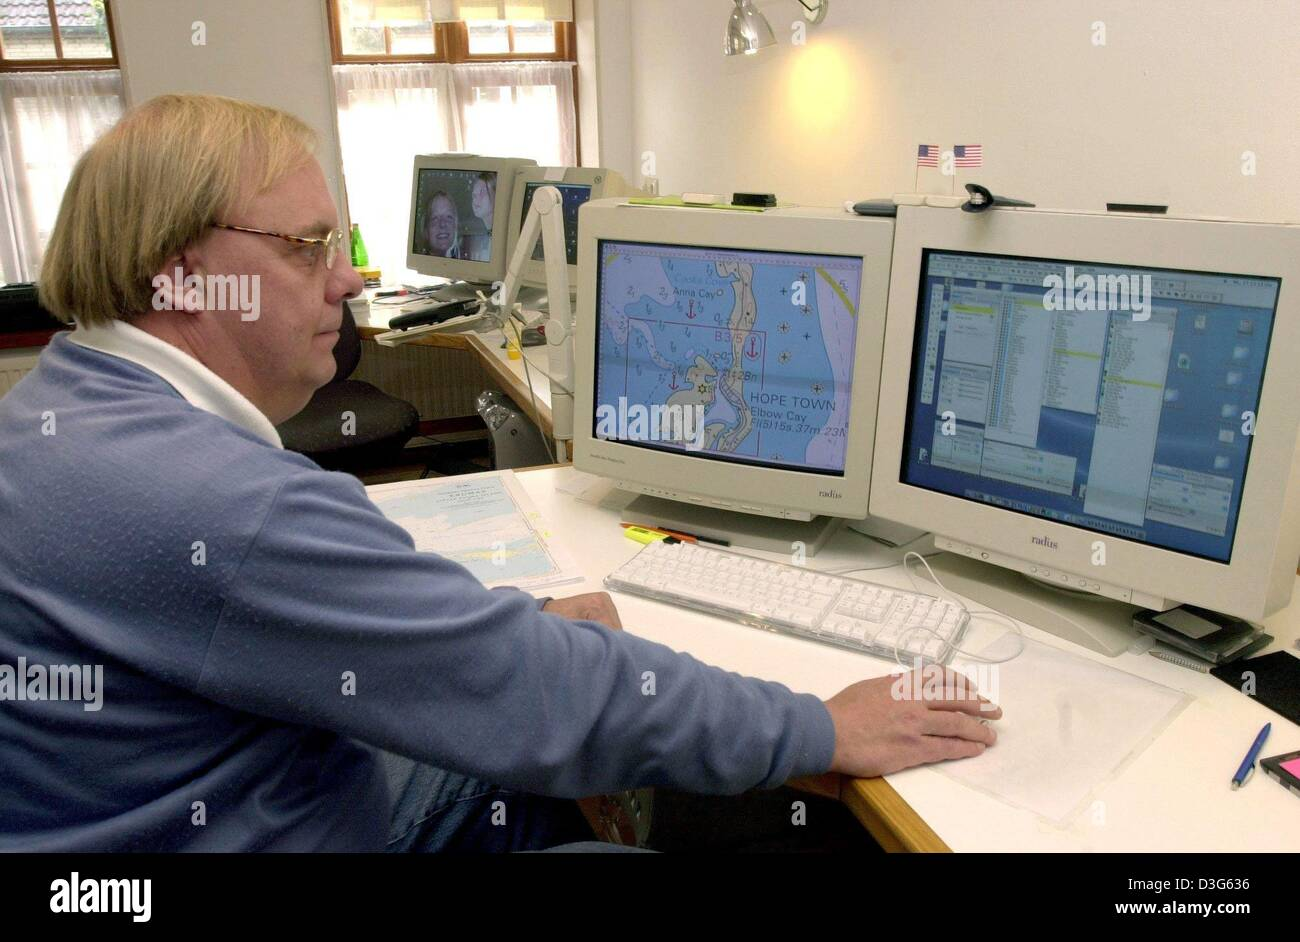 (dpa) - Cartographer Folke Stender works on a sea chart on his computer in Arnis an der Schlei, northern Germany, - Stock Image